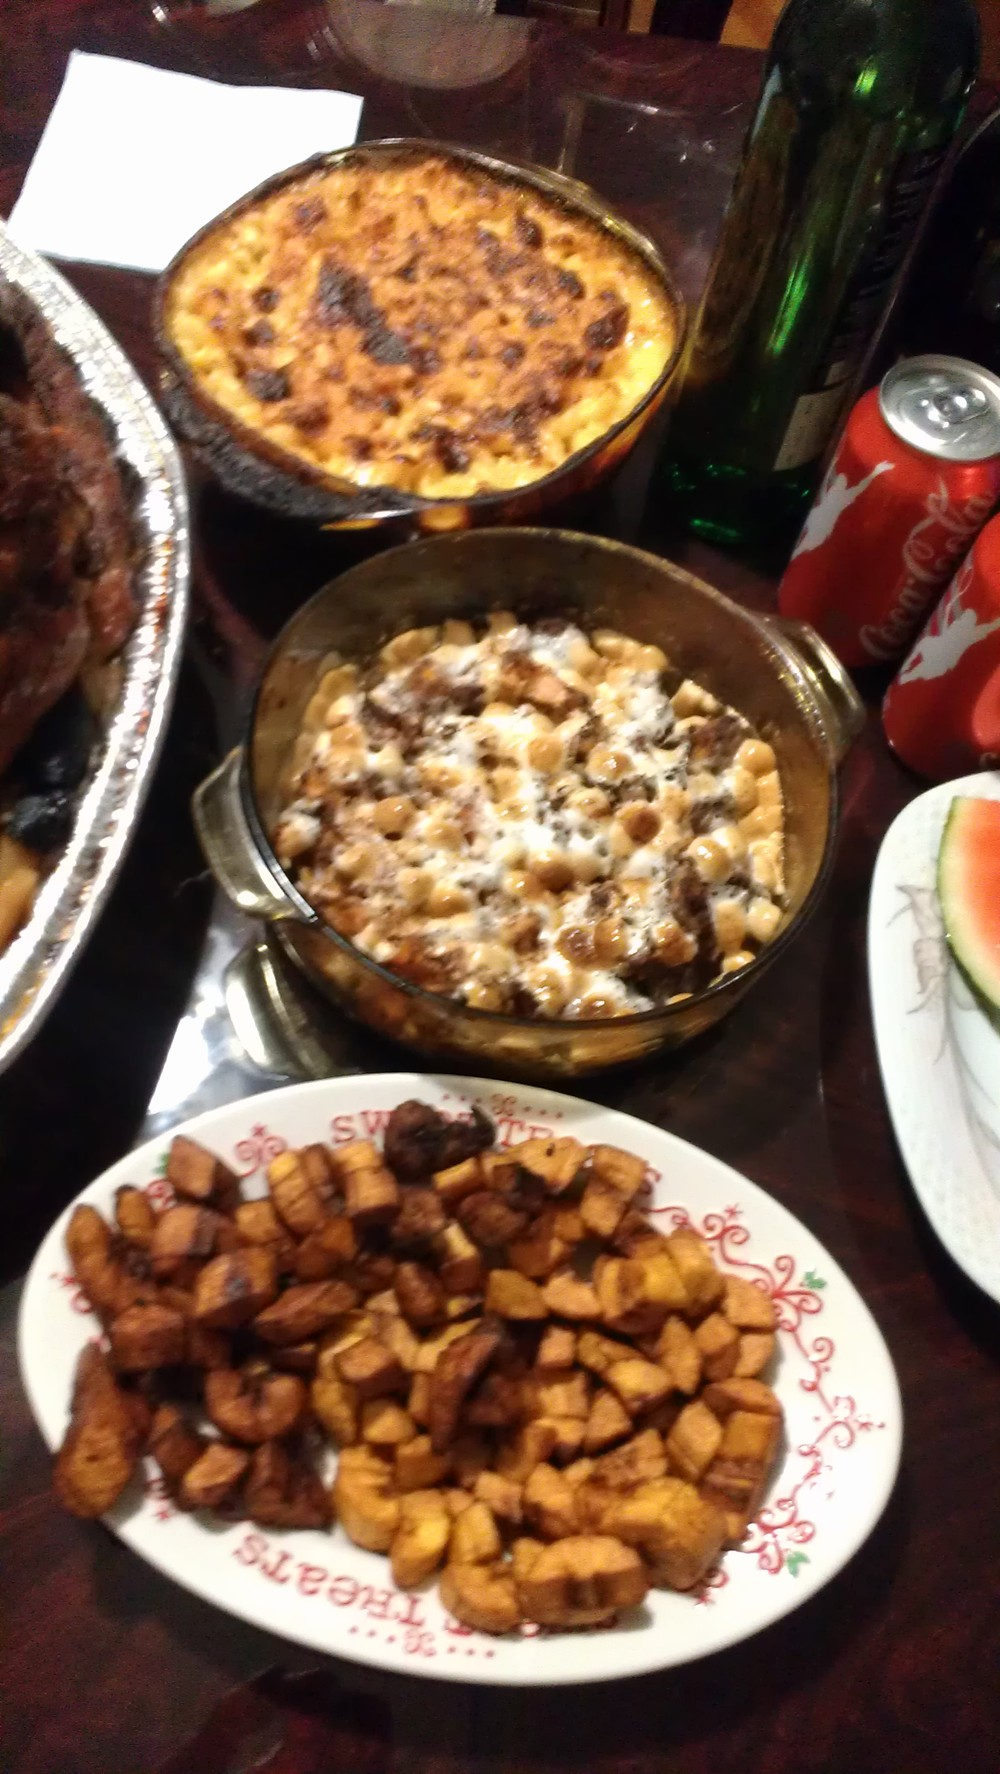 A trio of even more sides! From top to bottom - Mac & cheese, candied yams covered inmarshmallowsand fried plantains.